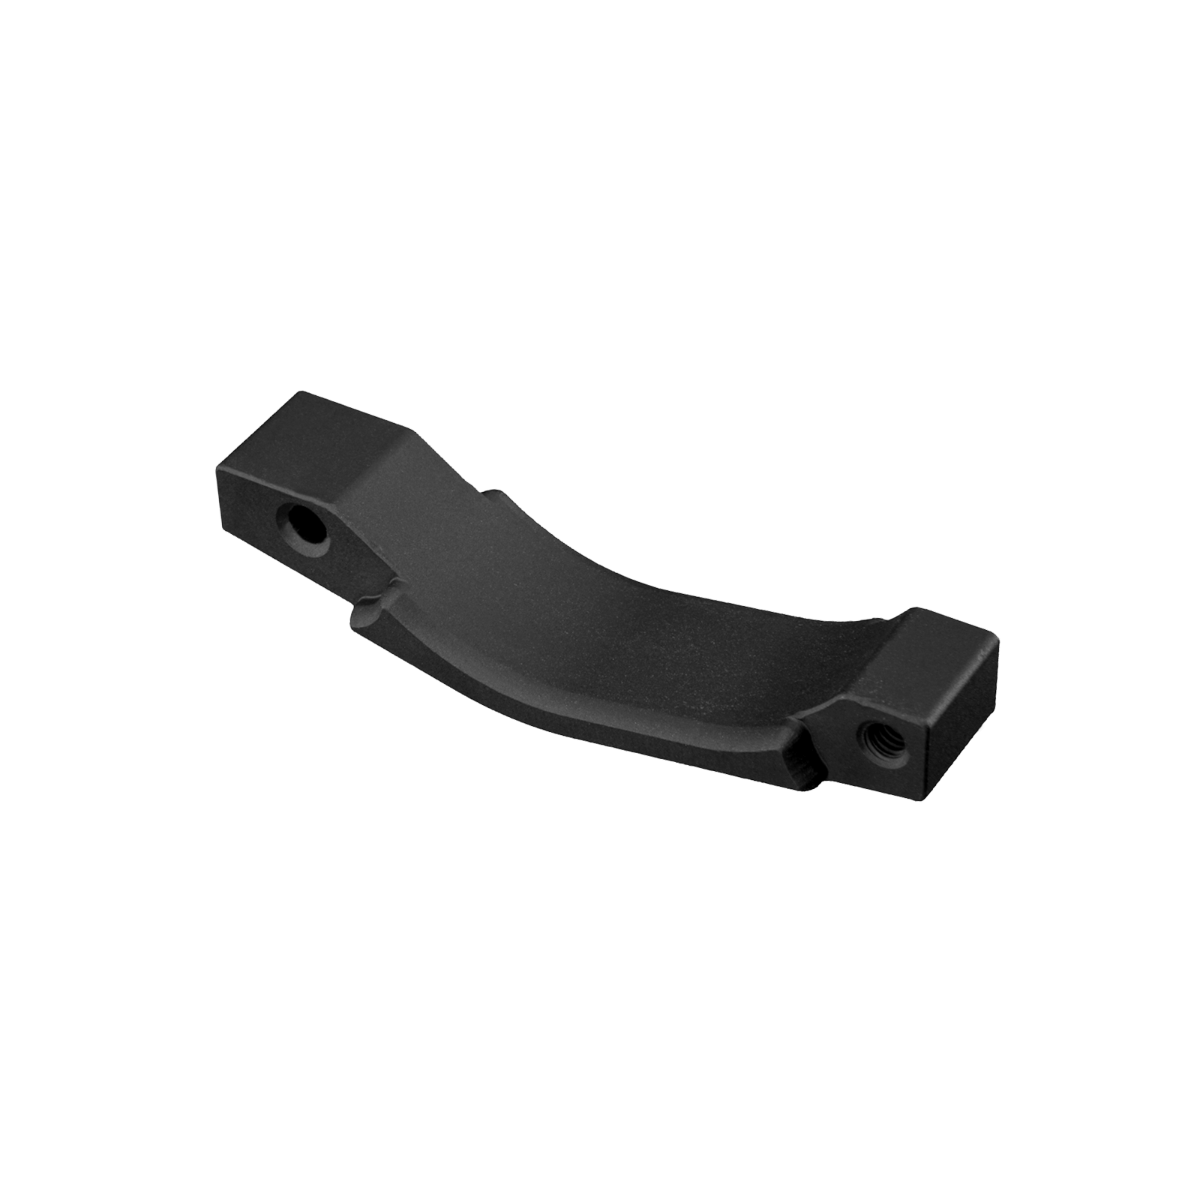 Magpul Enhanced Trigger Guard - Aluminum